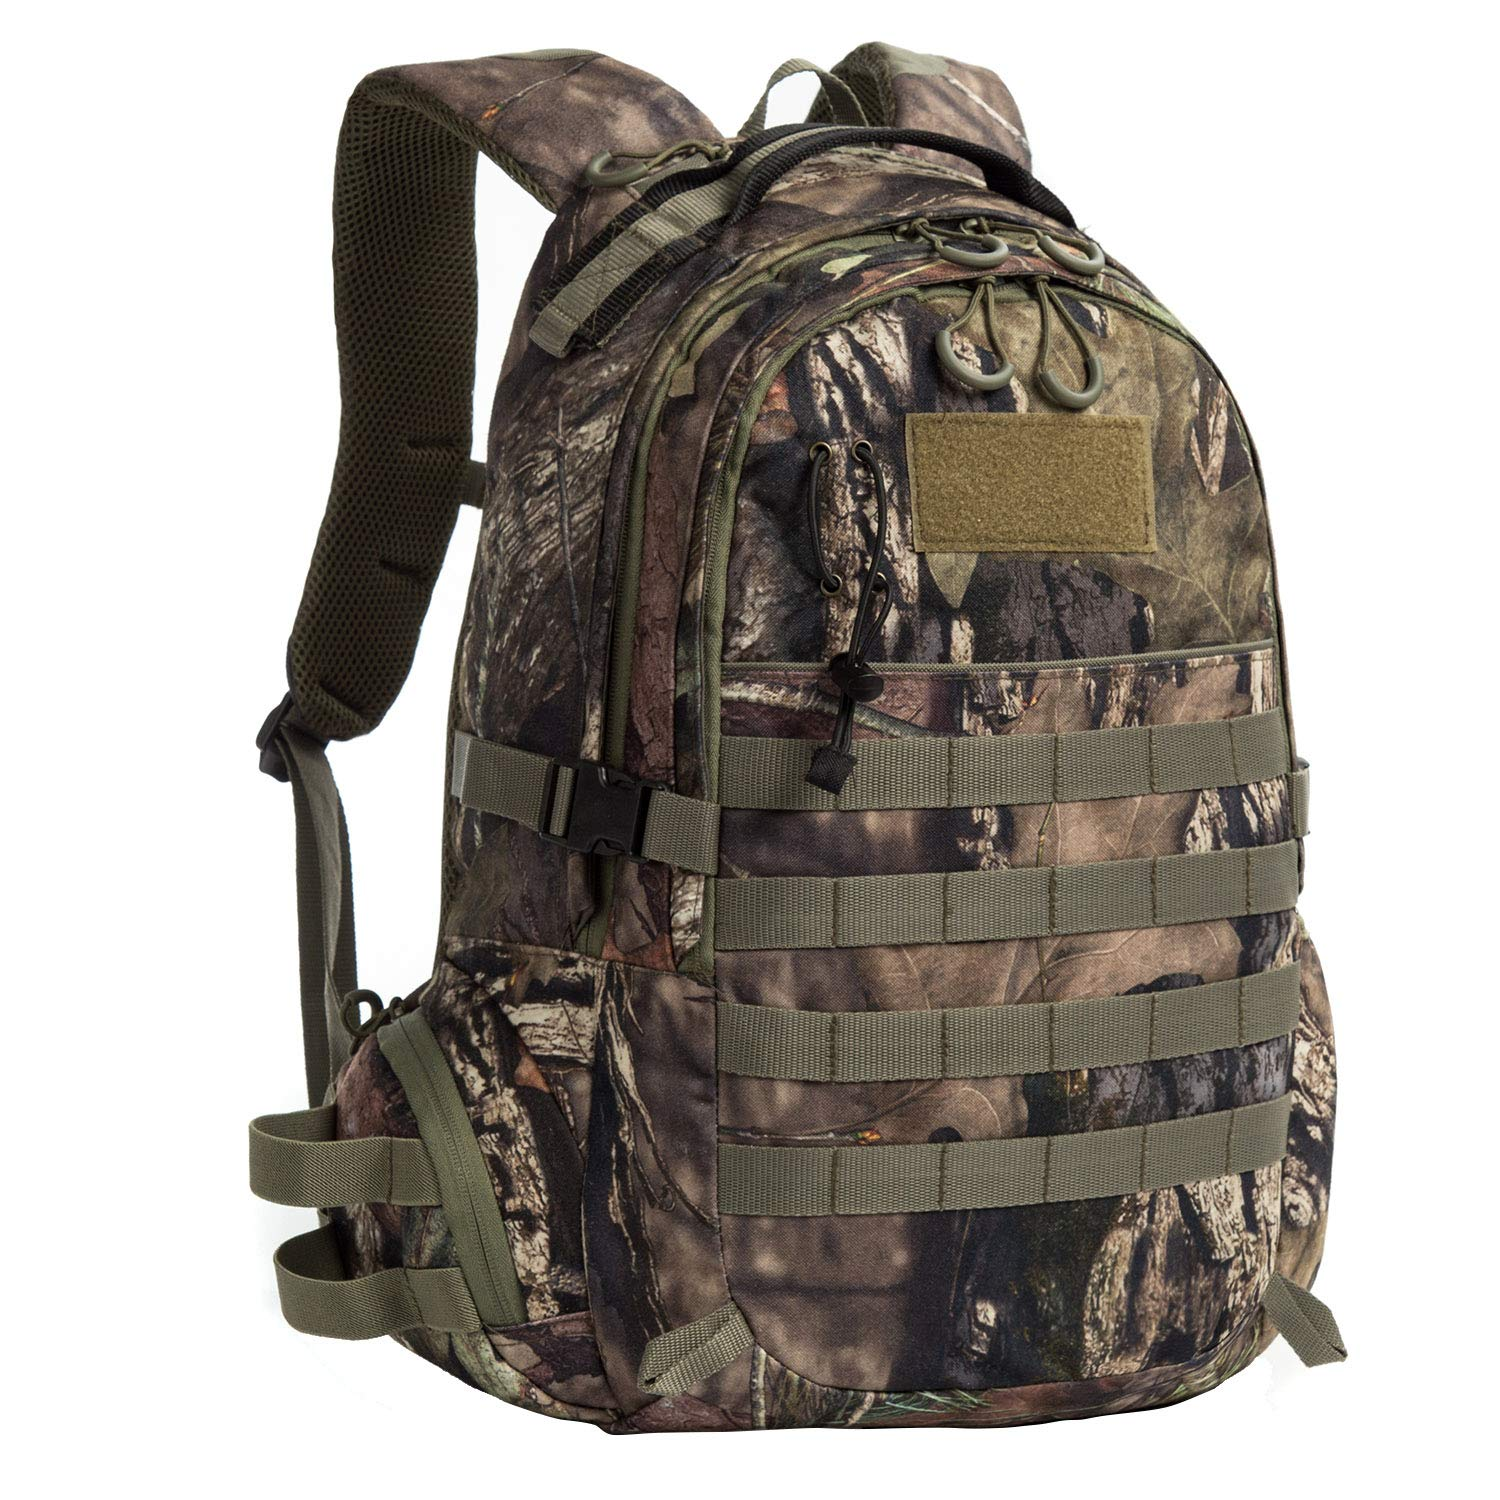 Aumtisc Camouflage Hunting Backpack, Hunting Packs -19'' x 12'' x 7'' (Green)